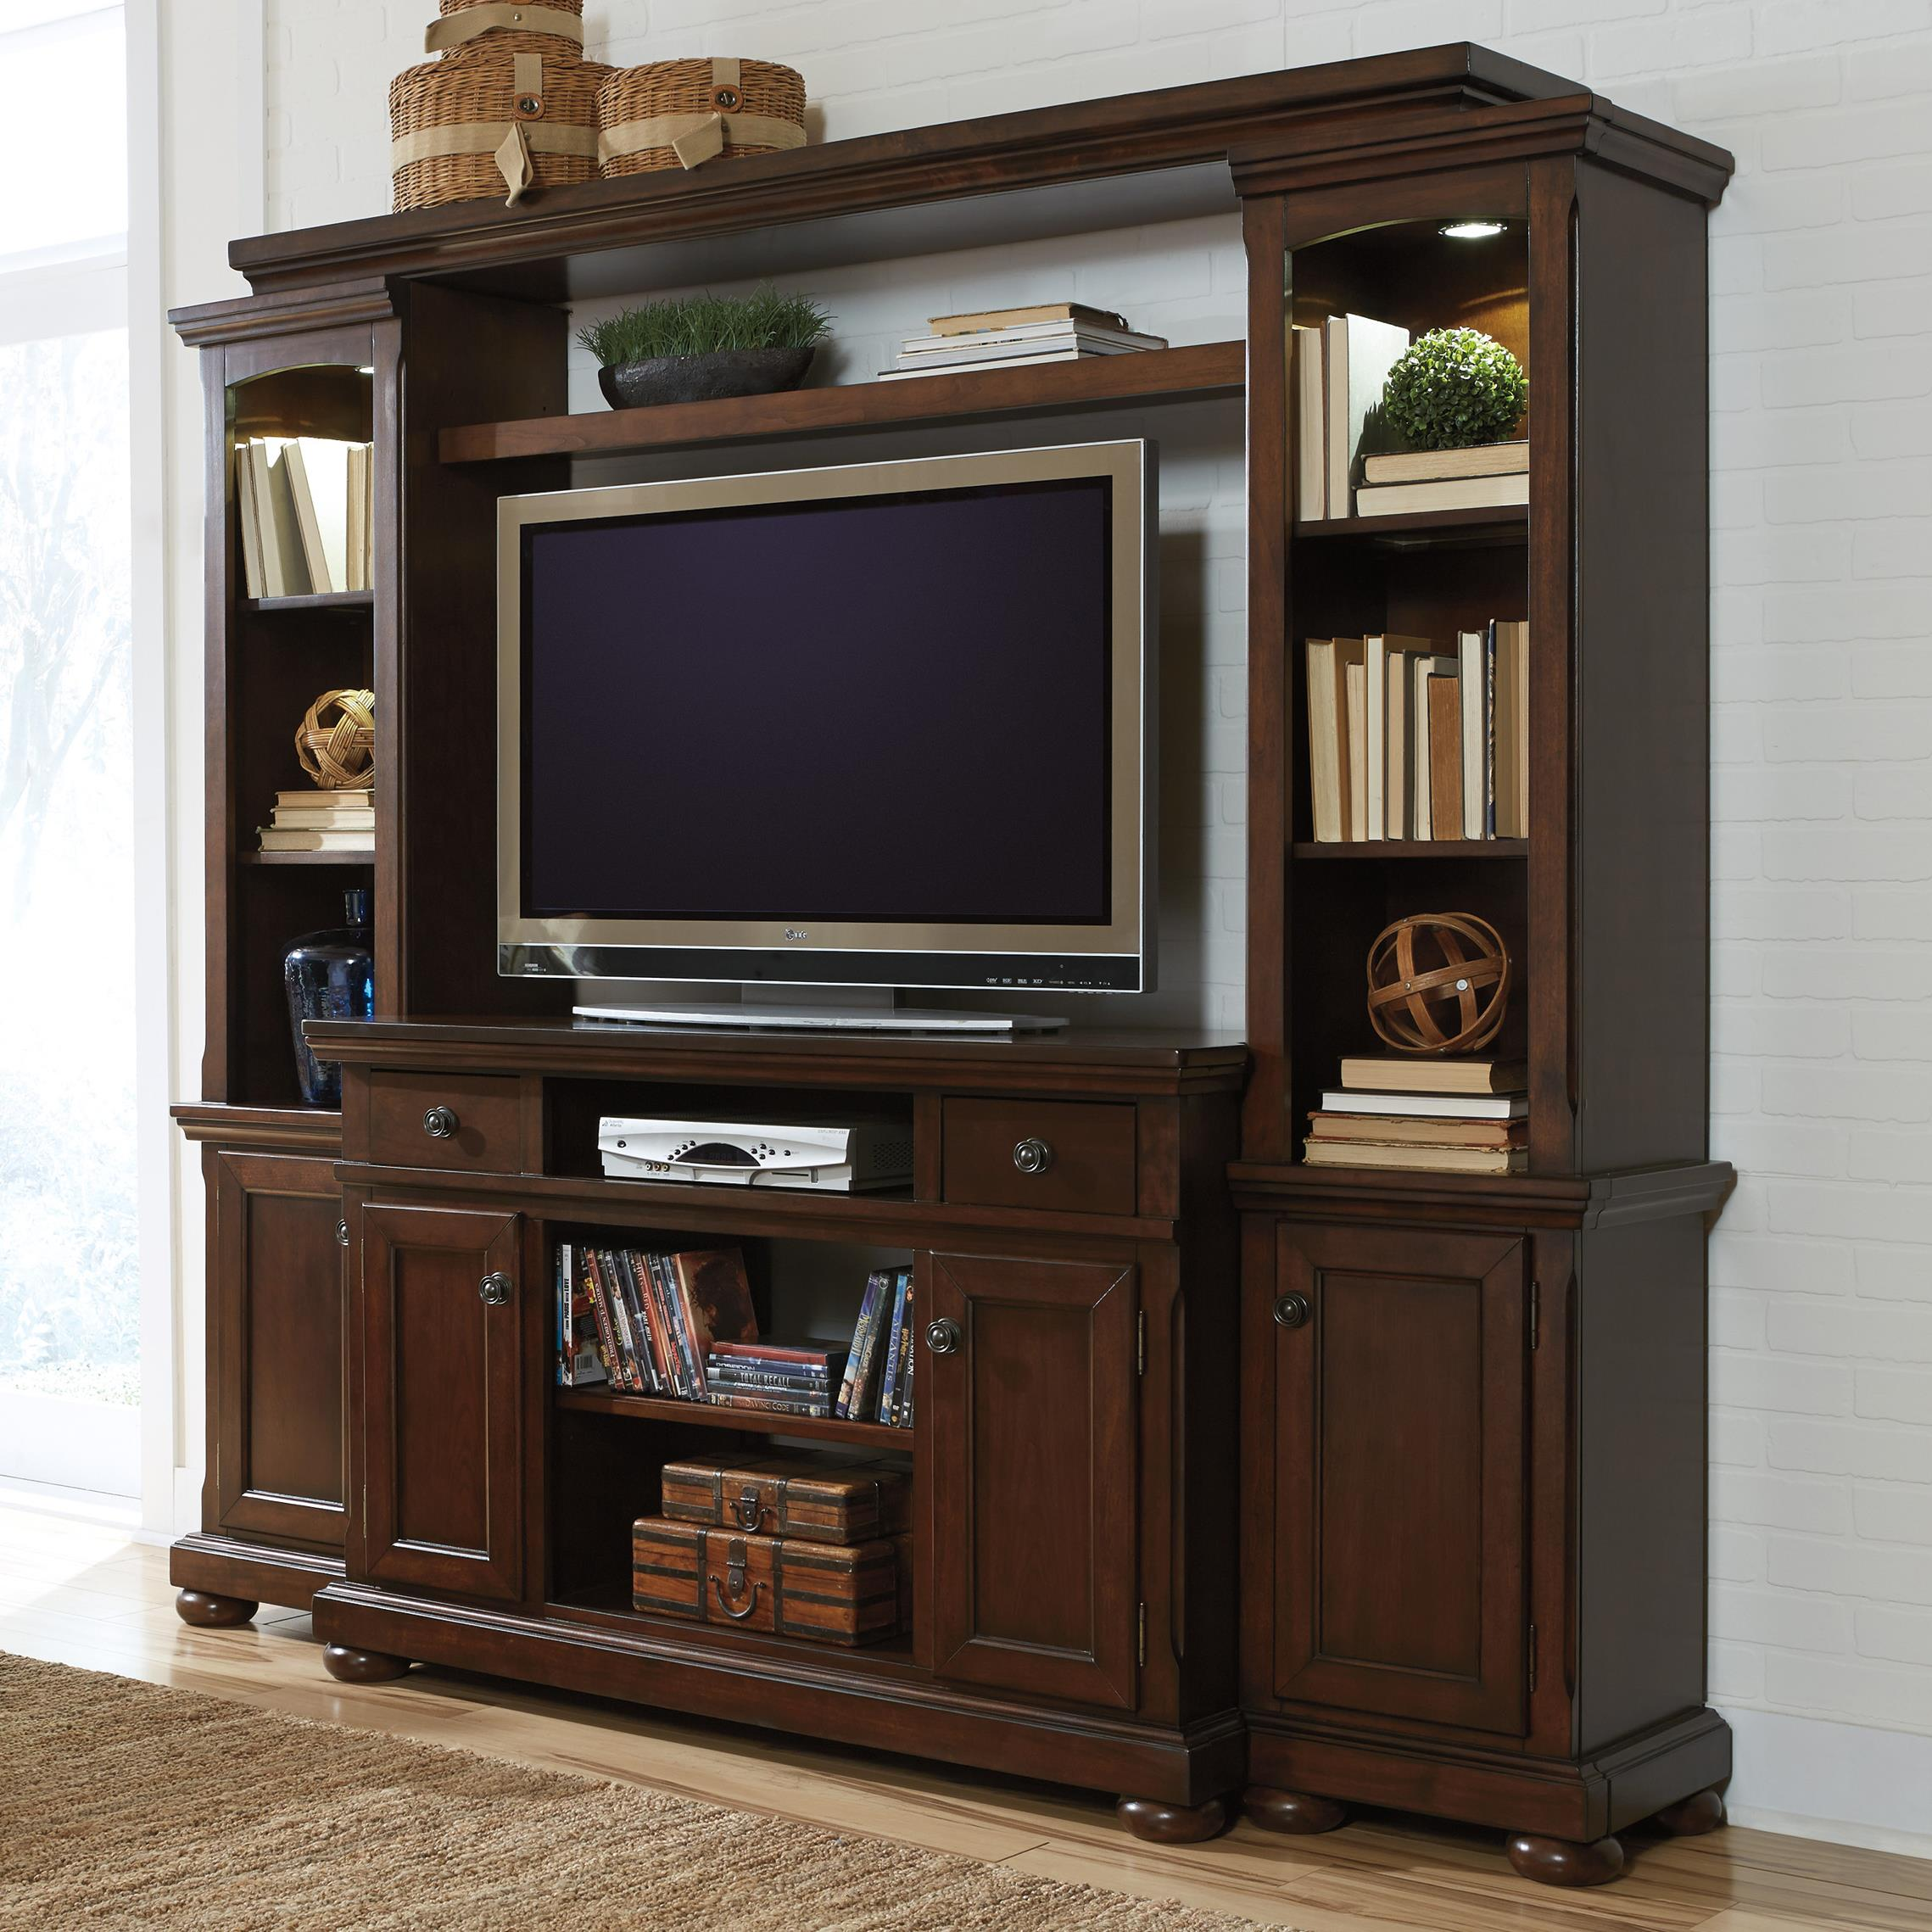 Millennium Porter TV Stand, Bridge, and Piers - Item Number: W697-24+25+120+23